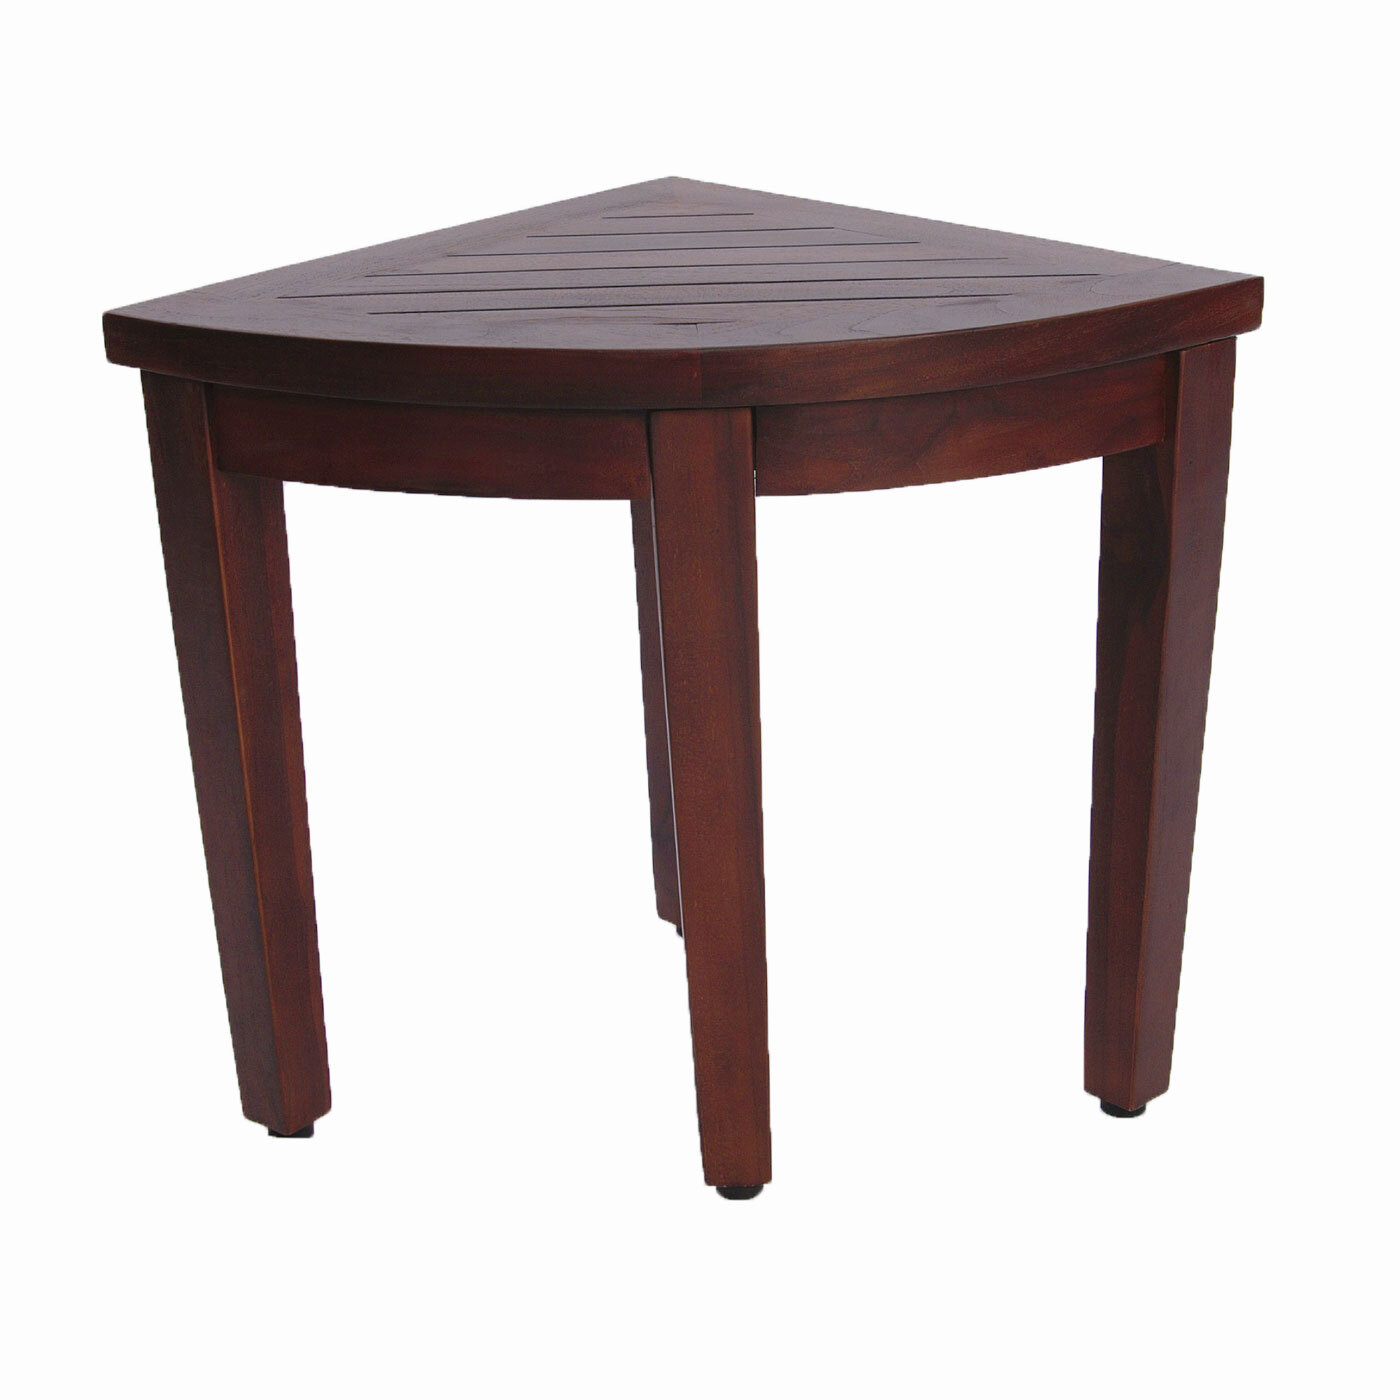 Decoteak Oasis Teak Corner Shower Seat Stool Shower Seat & Reviews ...